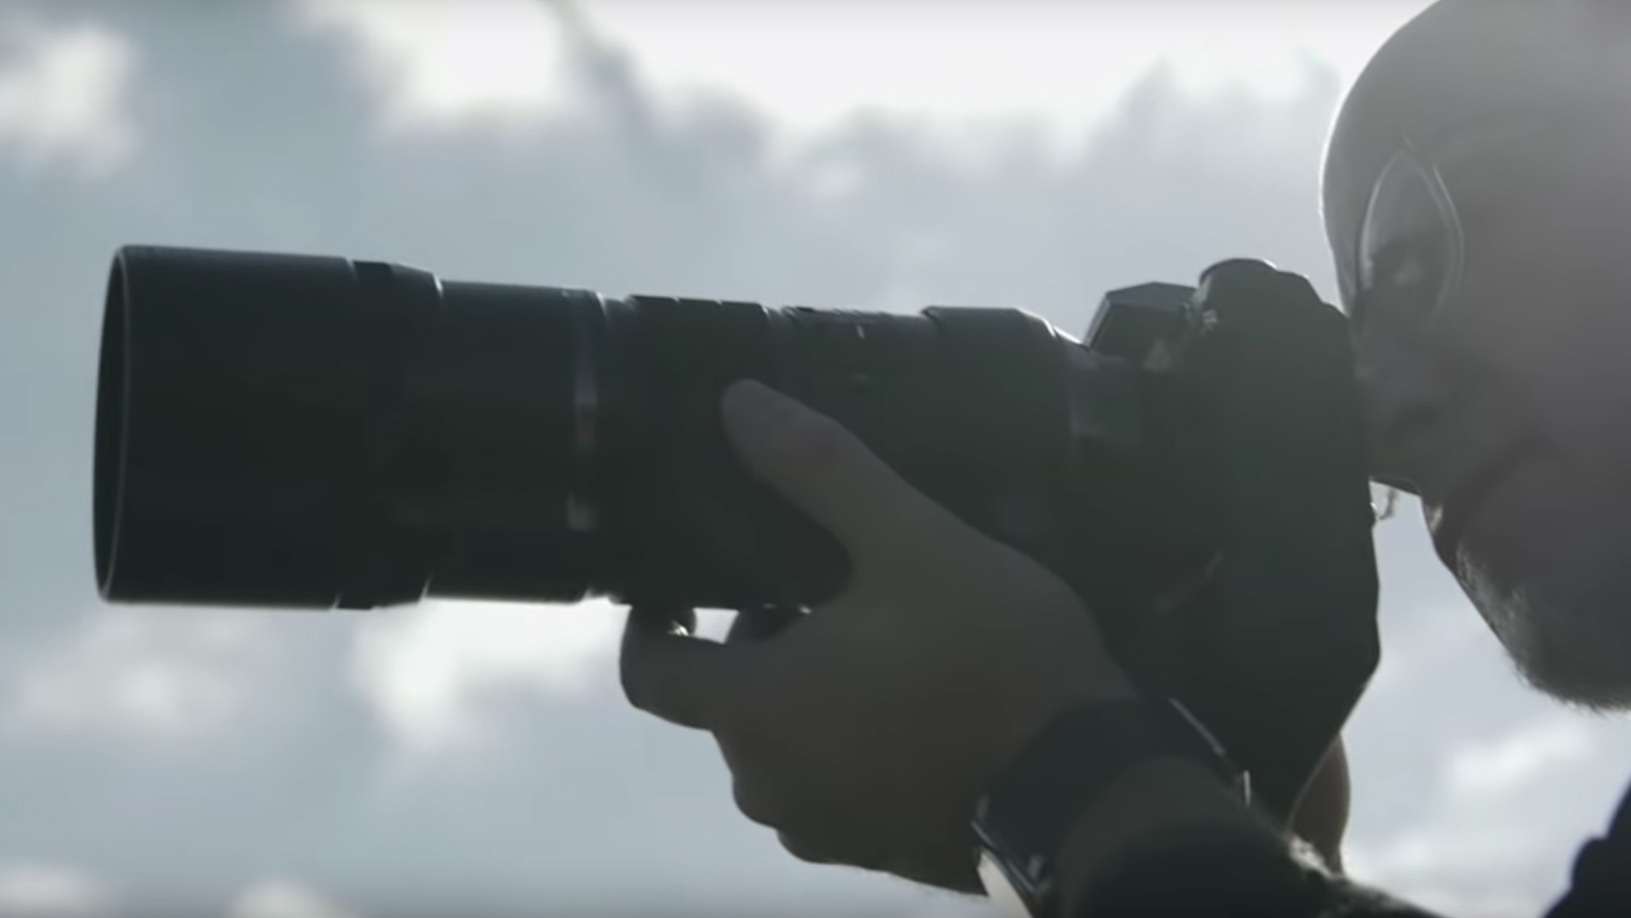 Olympus releases second teaser video for its upcoming high-end camera